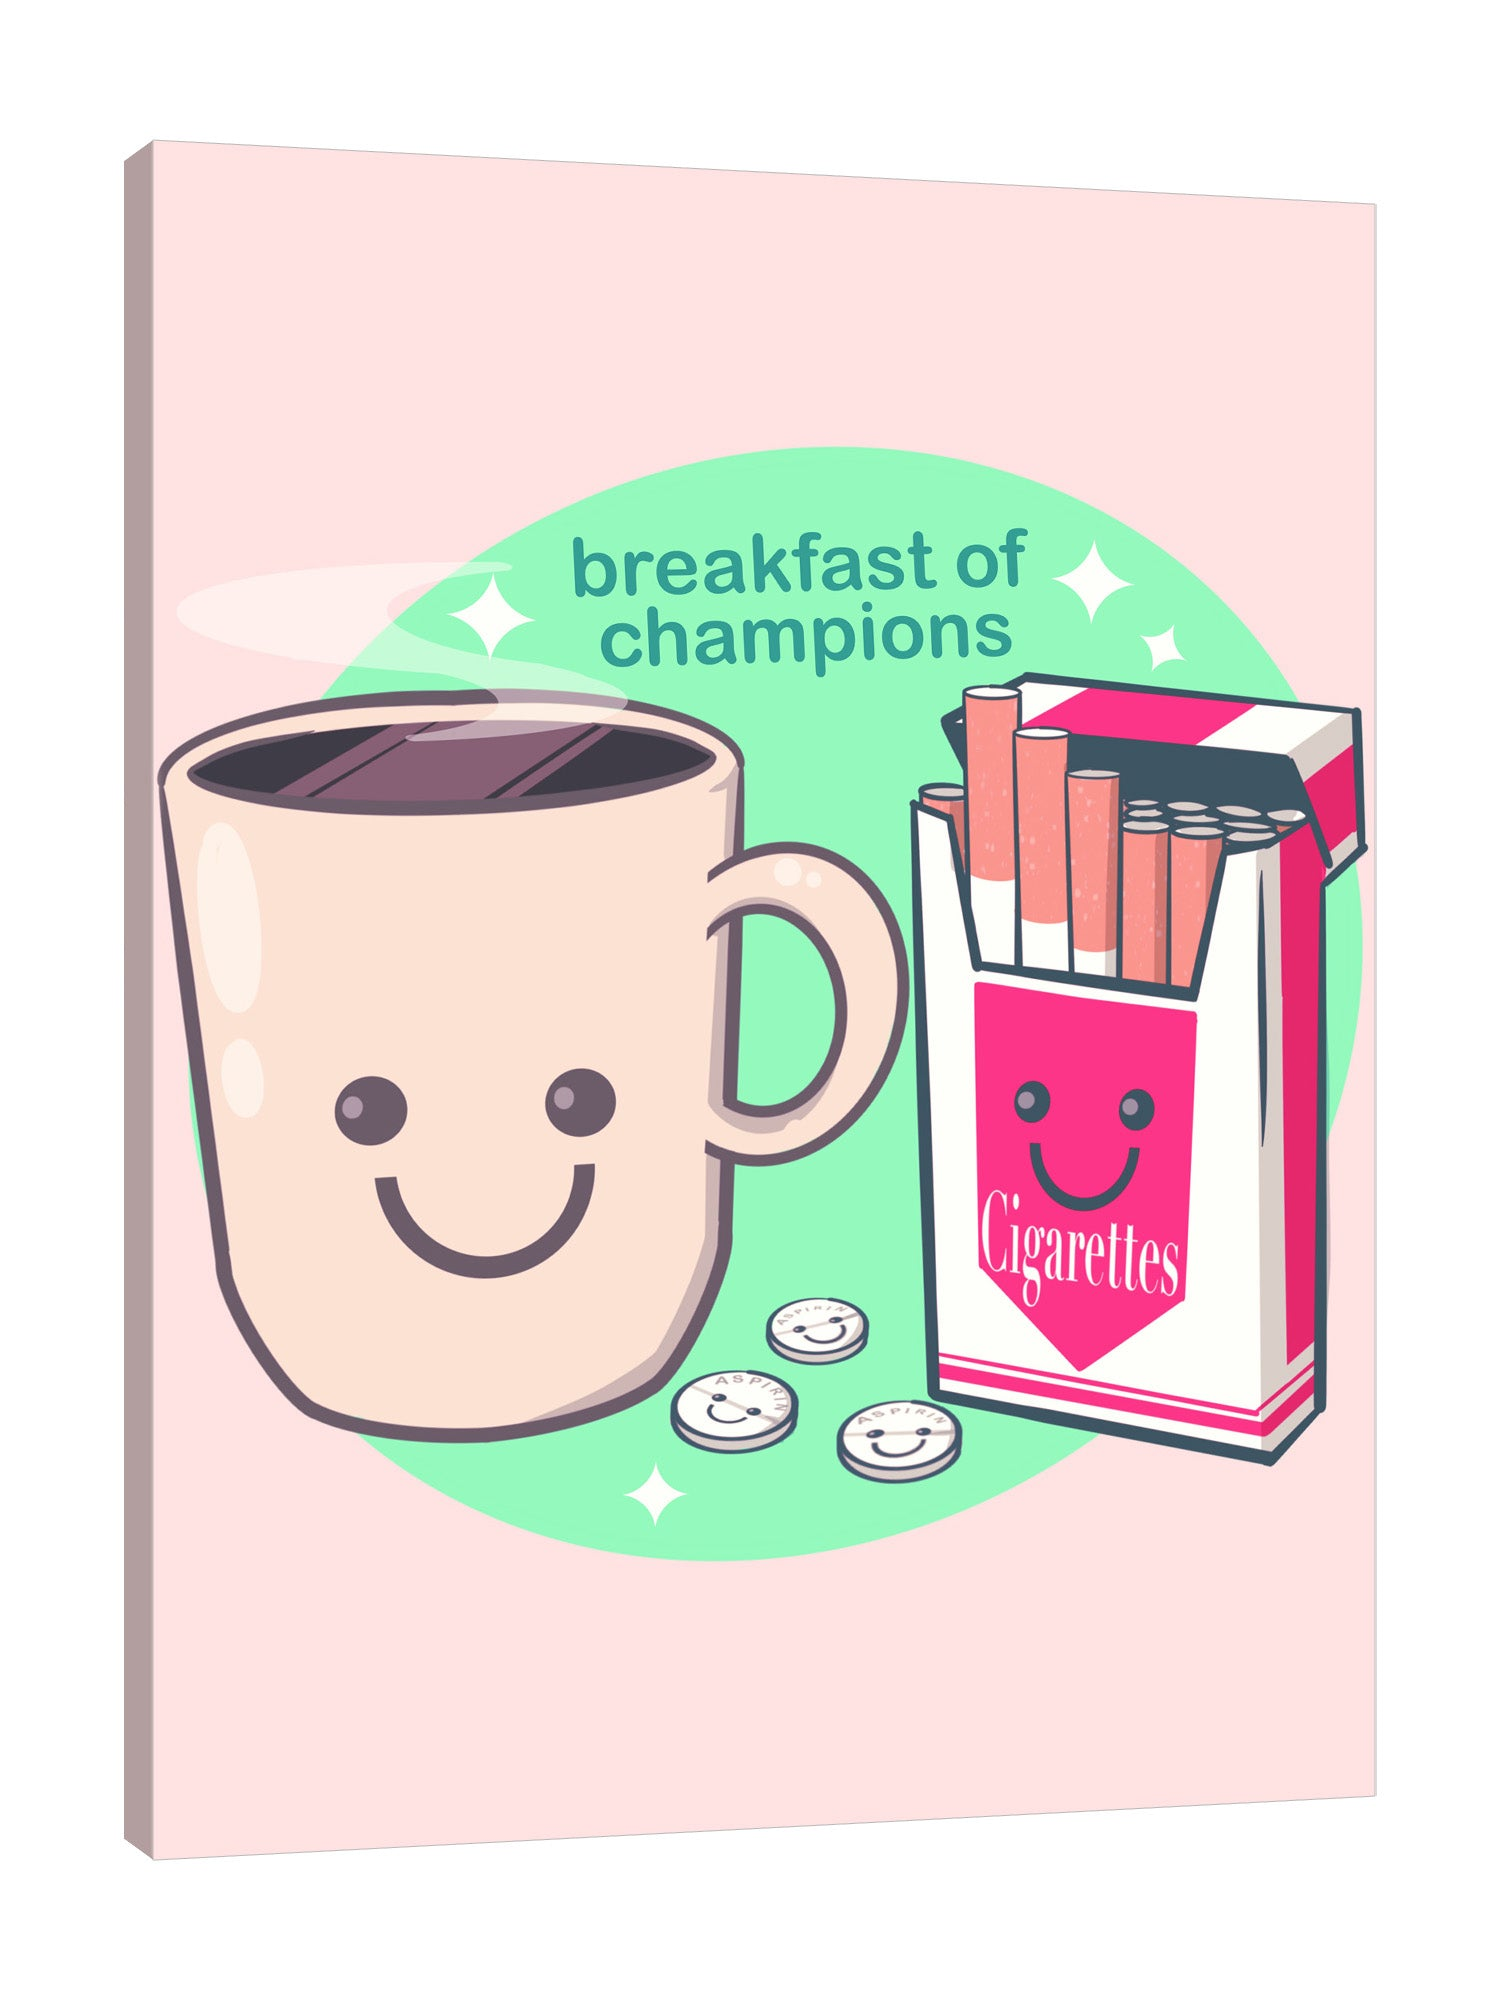 Ludwig-Van-Bacon,Vertical,3X4,Modern & Contemporary,Entertainment,Humor,Food & Beverage,cigarettes,cigarrette,smoking,smoke,pack of cigarettes,coins,coin,smile,smiley,champions,champ,coffee,coffees,drinks,sparkle,sparkles,cup,cups,humor,Red,Nude White,Blue,Charcoal Gray,Sky Blue,Tan Orange,Gray,White